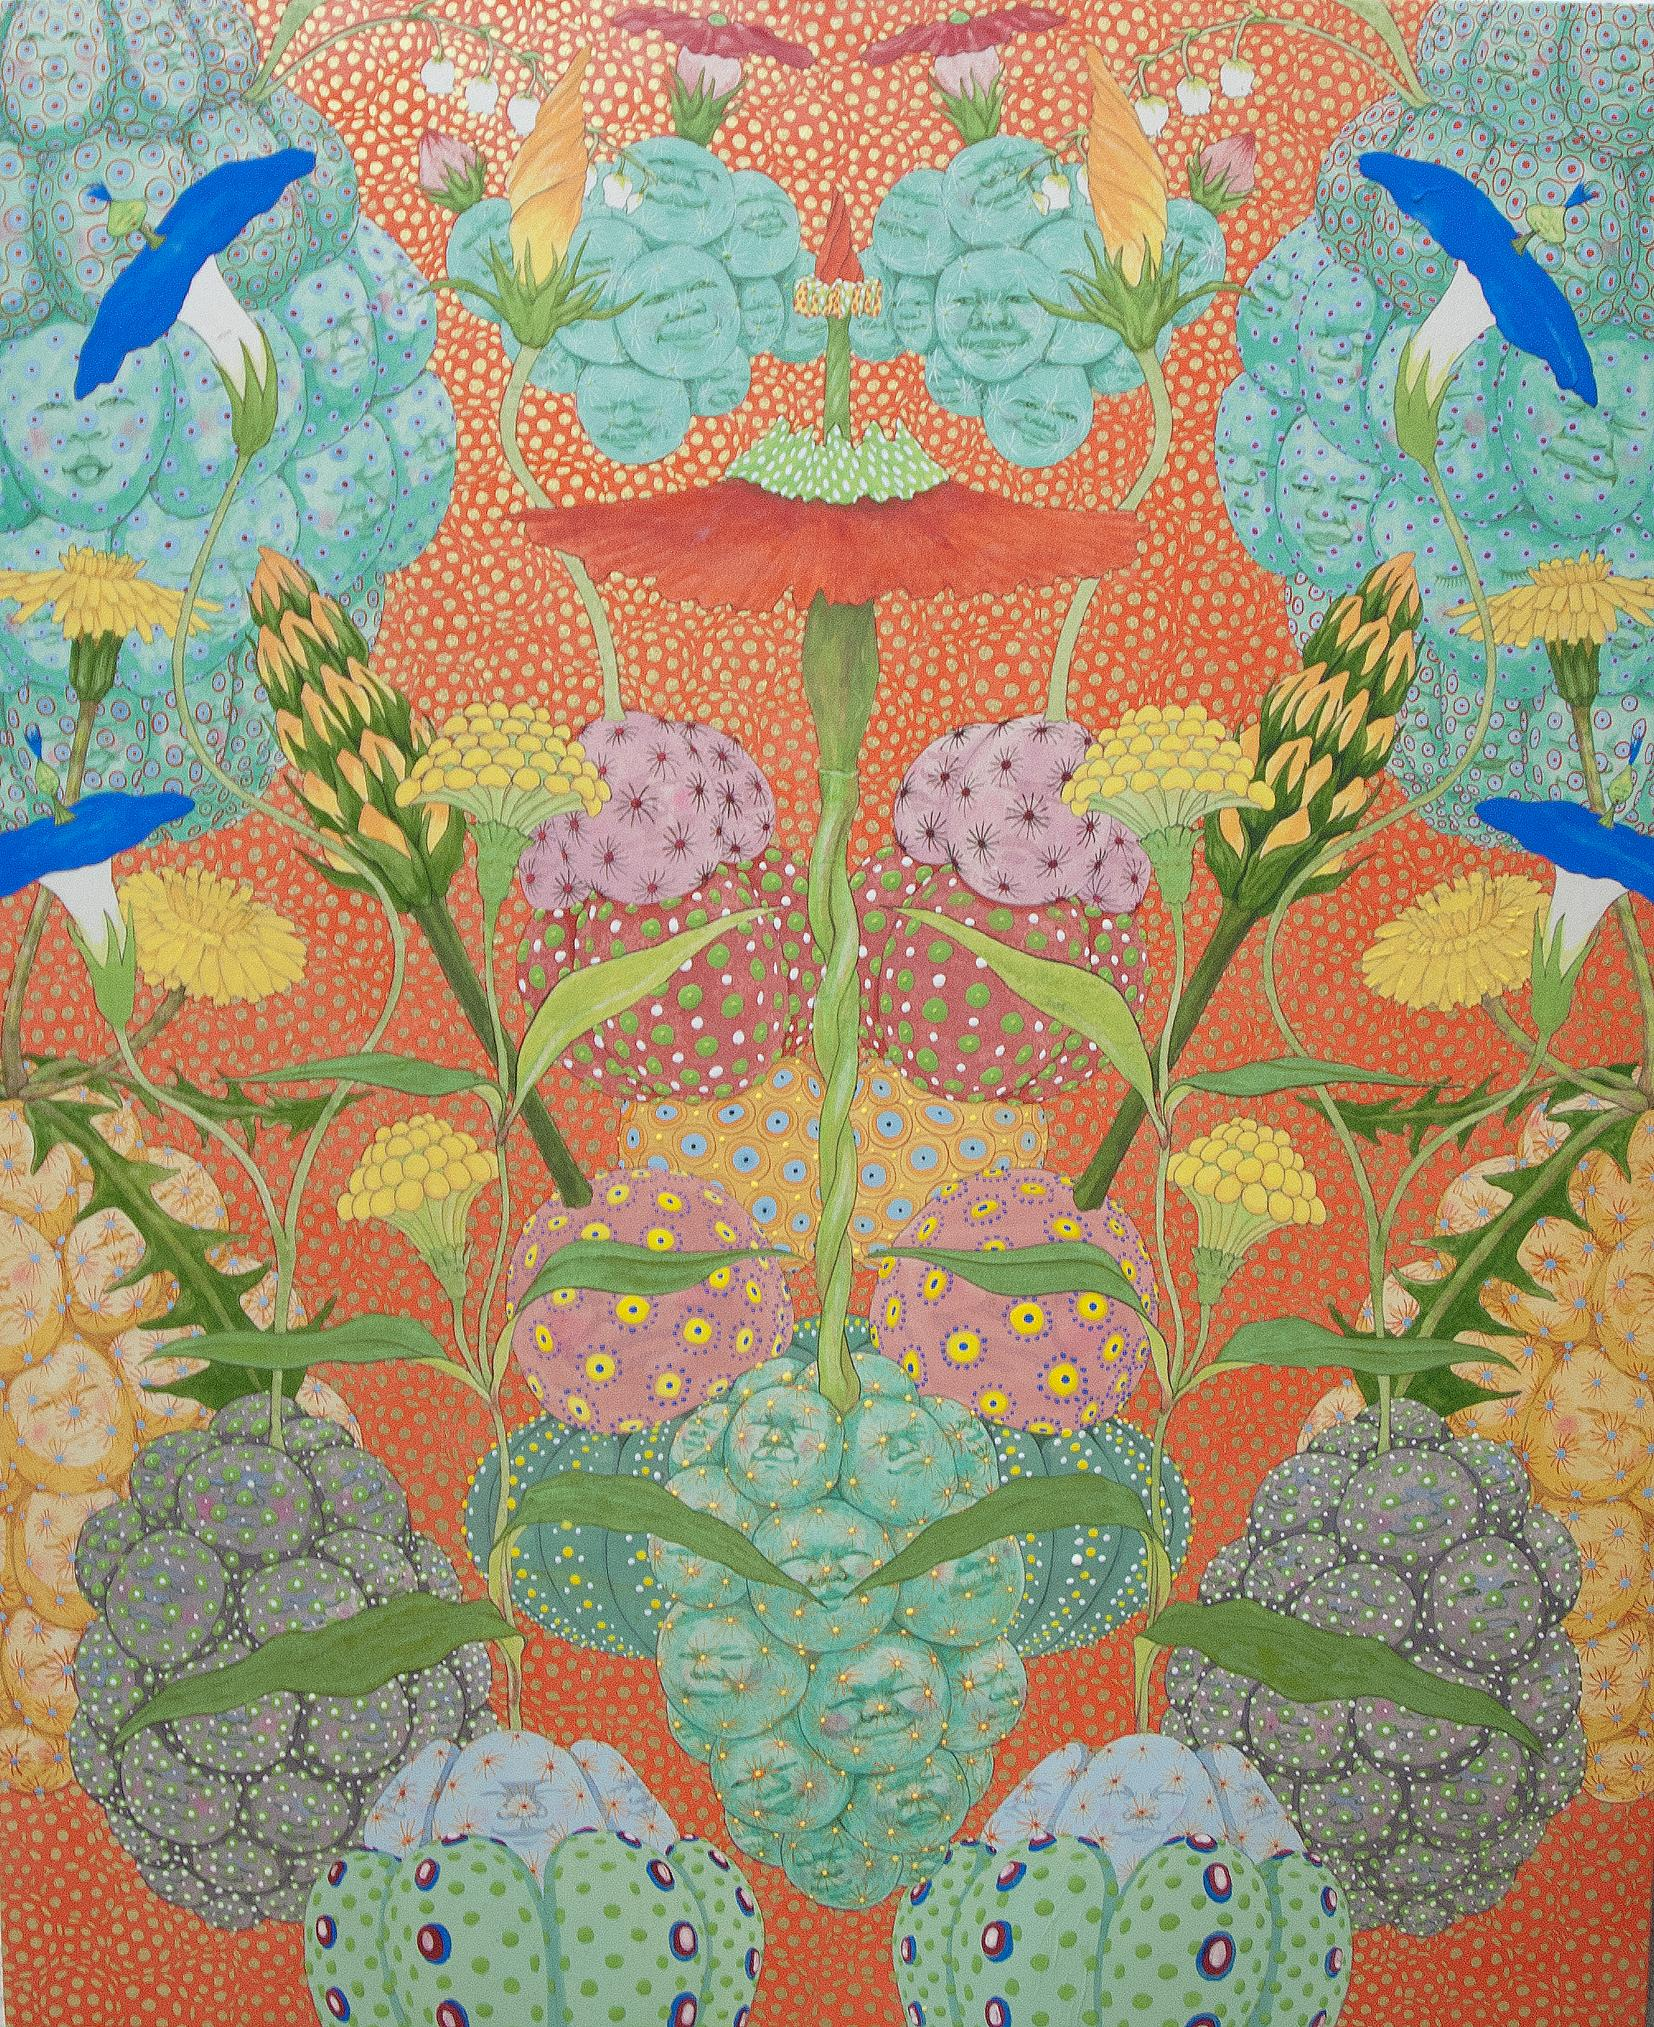 Nacimiento - 21st Cent, Contemporary, Figurative, Japanese, Relief Print, Glass